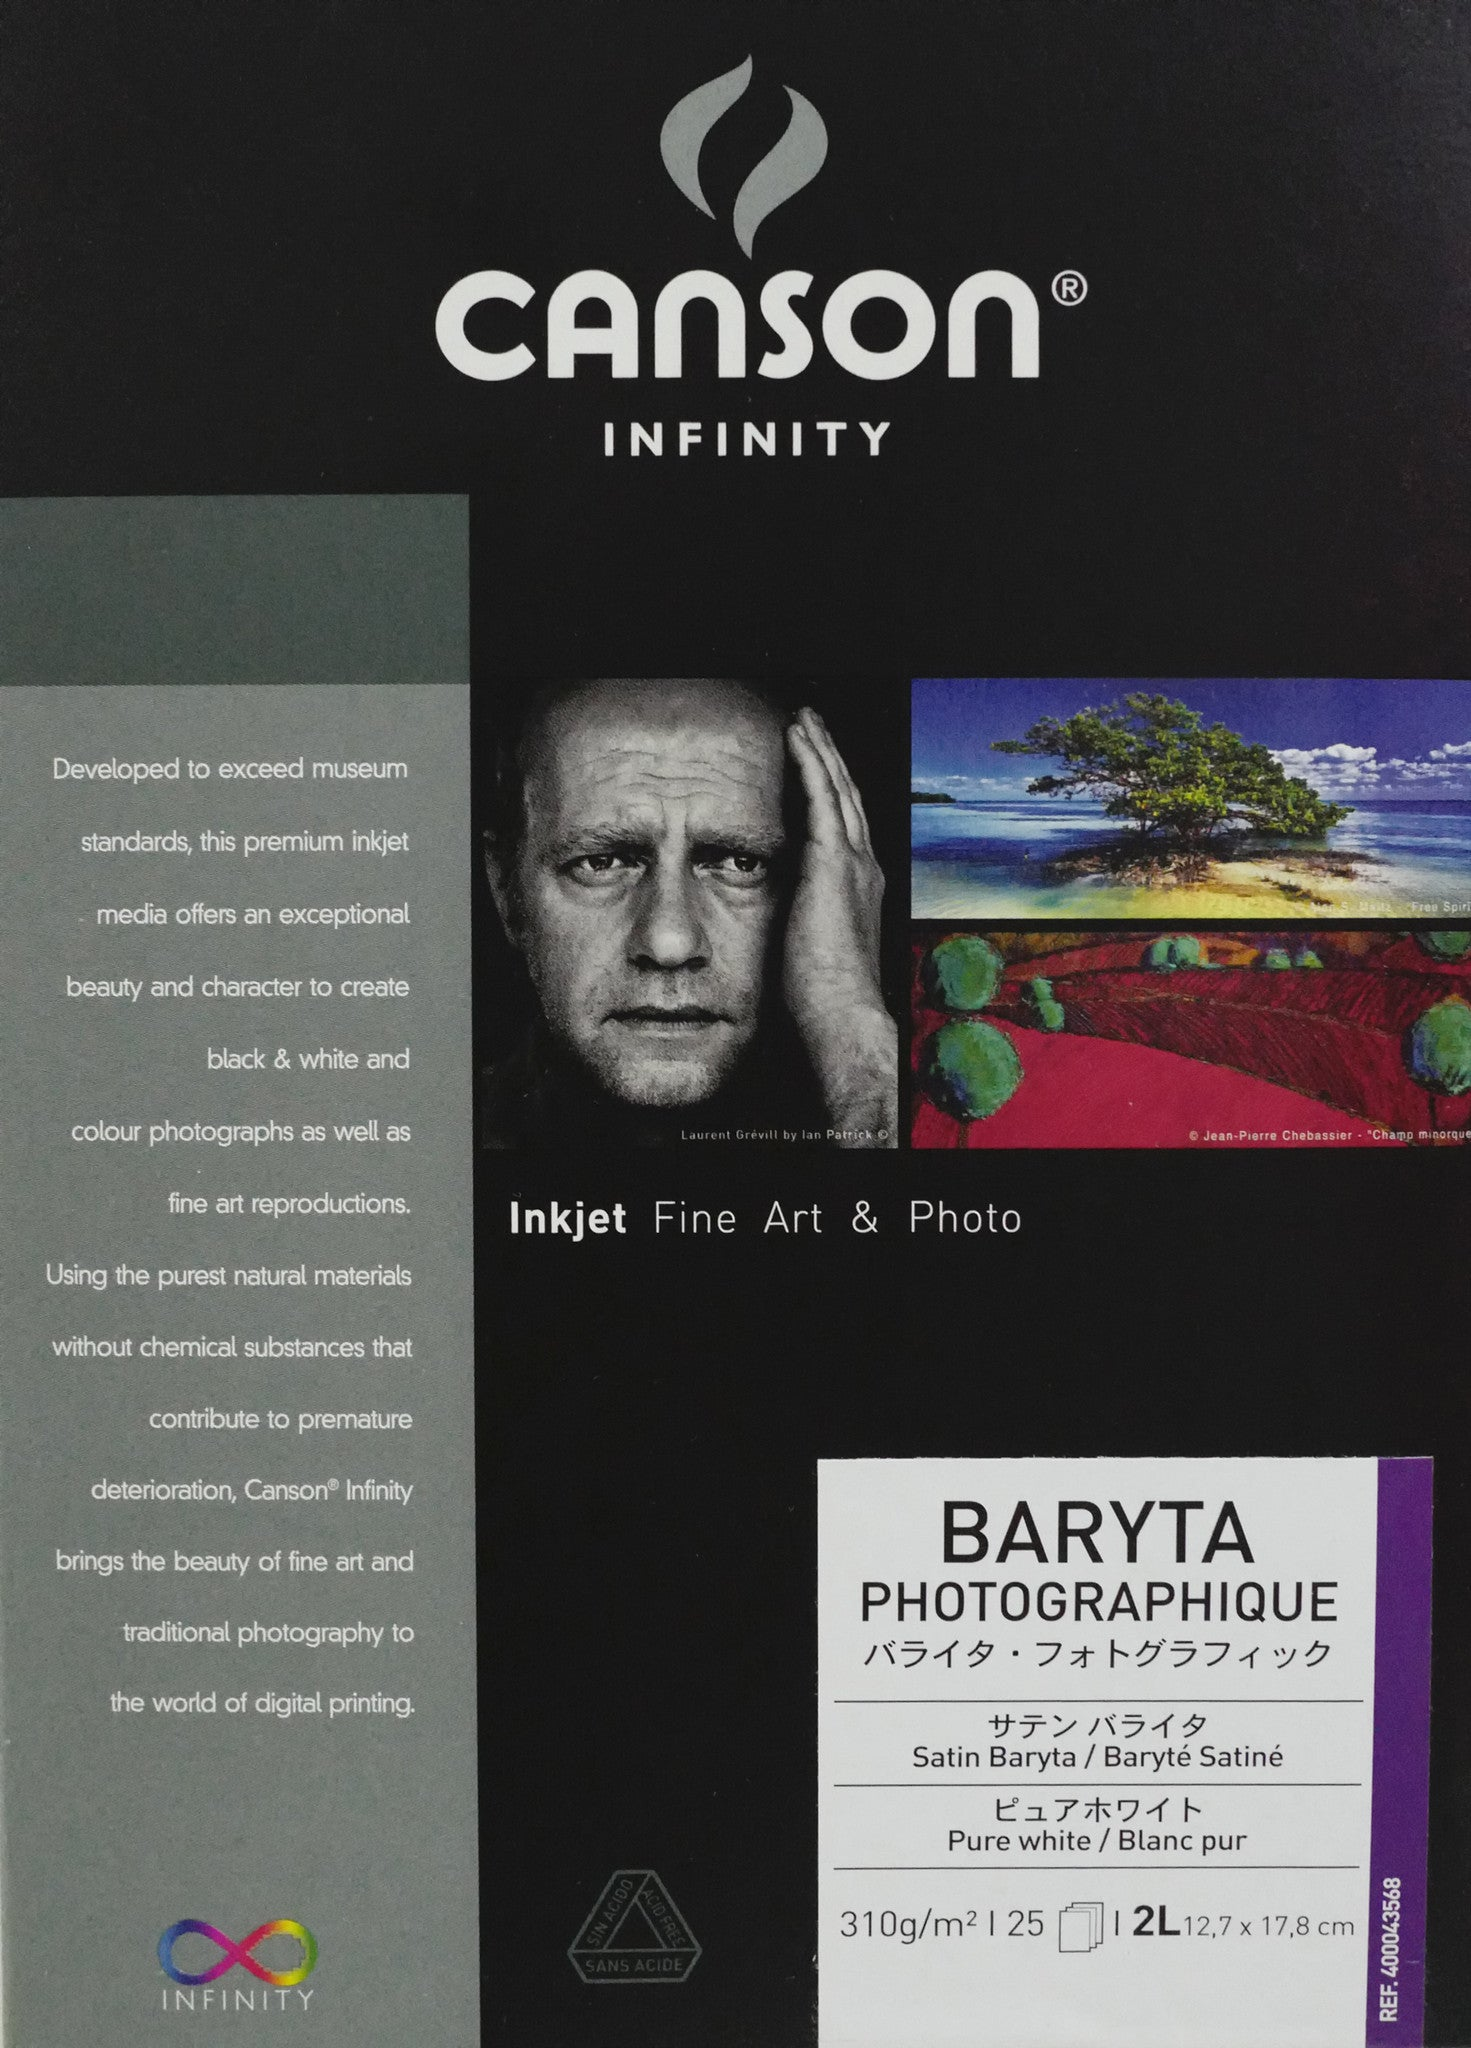 Canson Infinity Baryta Photographique - 310gsm - 5R - 25 sheets